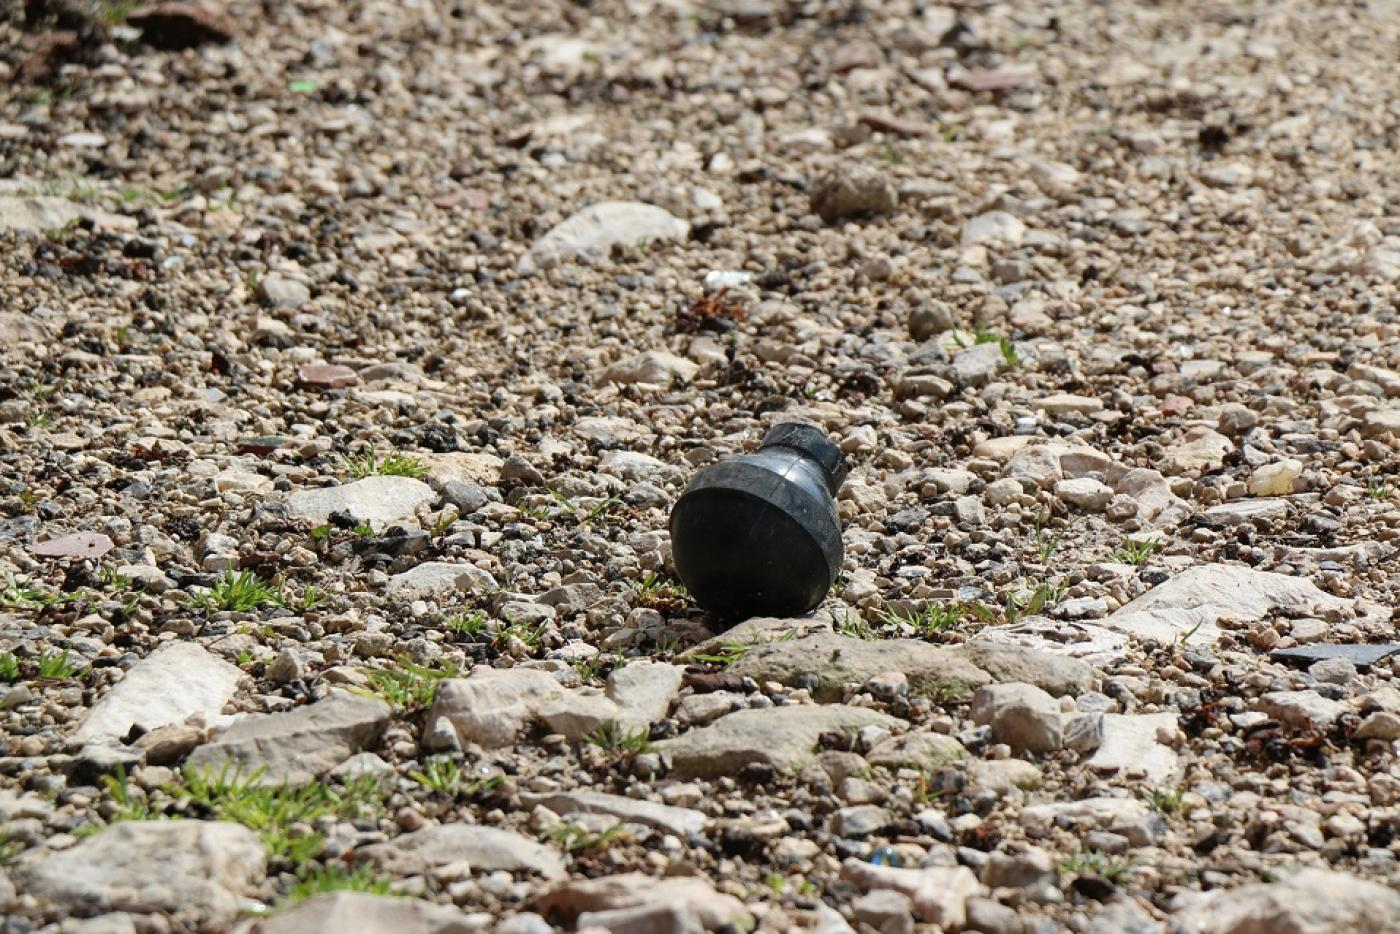 Remnants of a sound bombs set off by the soldiers in front of Abu Srour's home (MEE/Akram al-Waara)